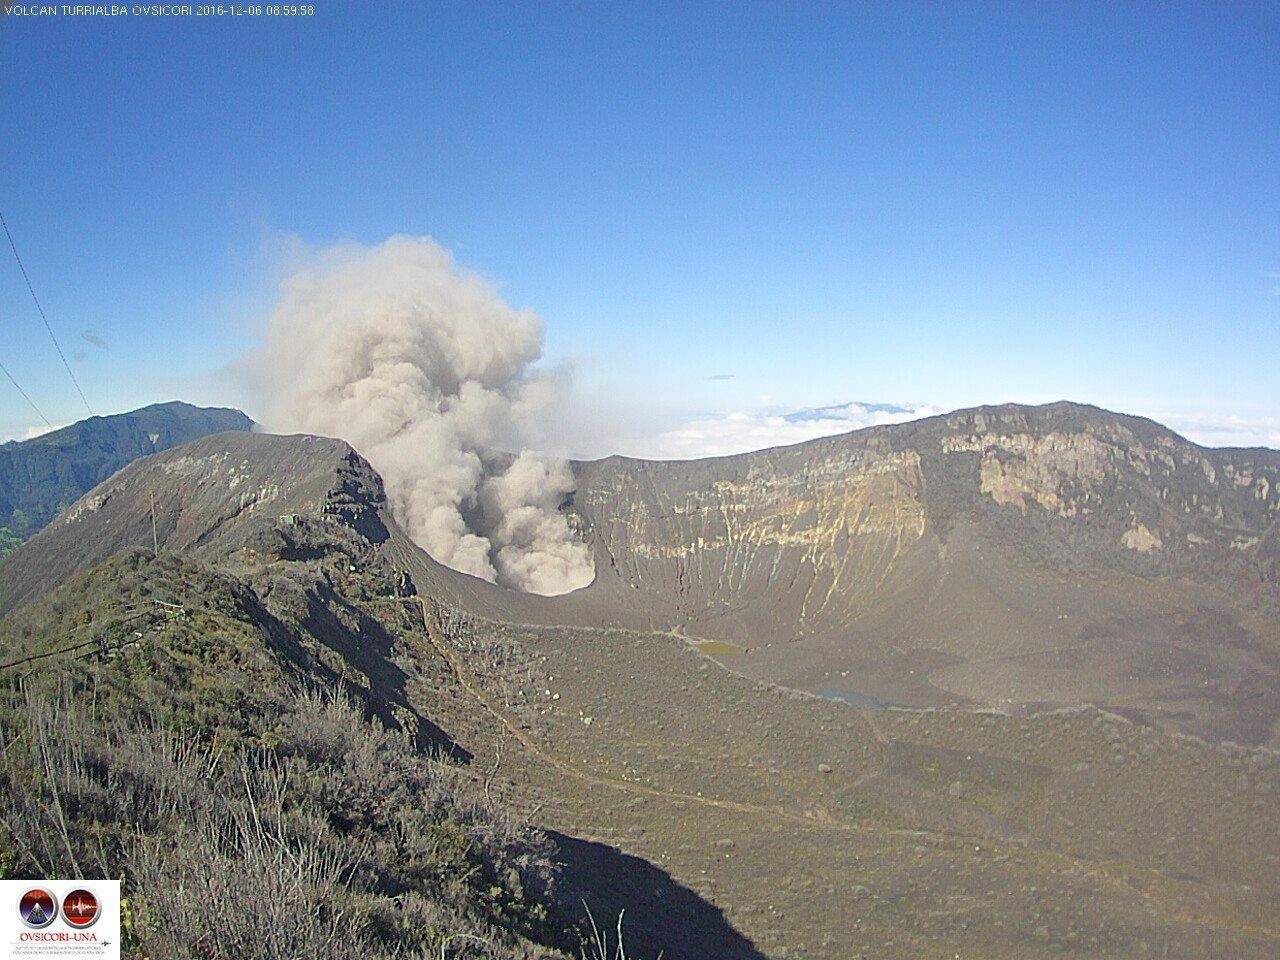 Turrialba - 06.12.2016 / 9h - webcam Ovsicori